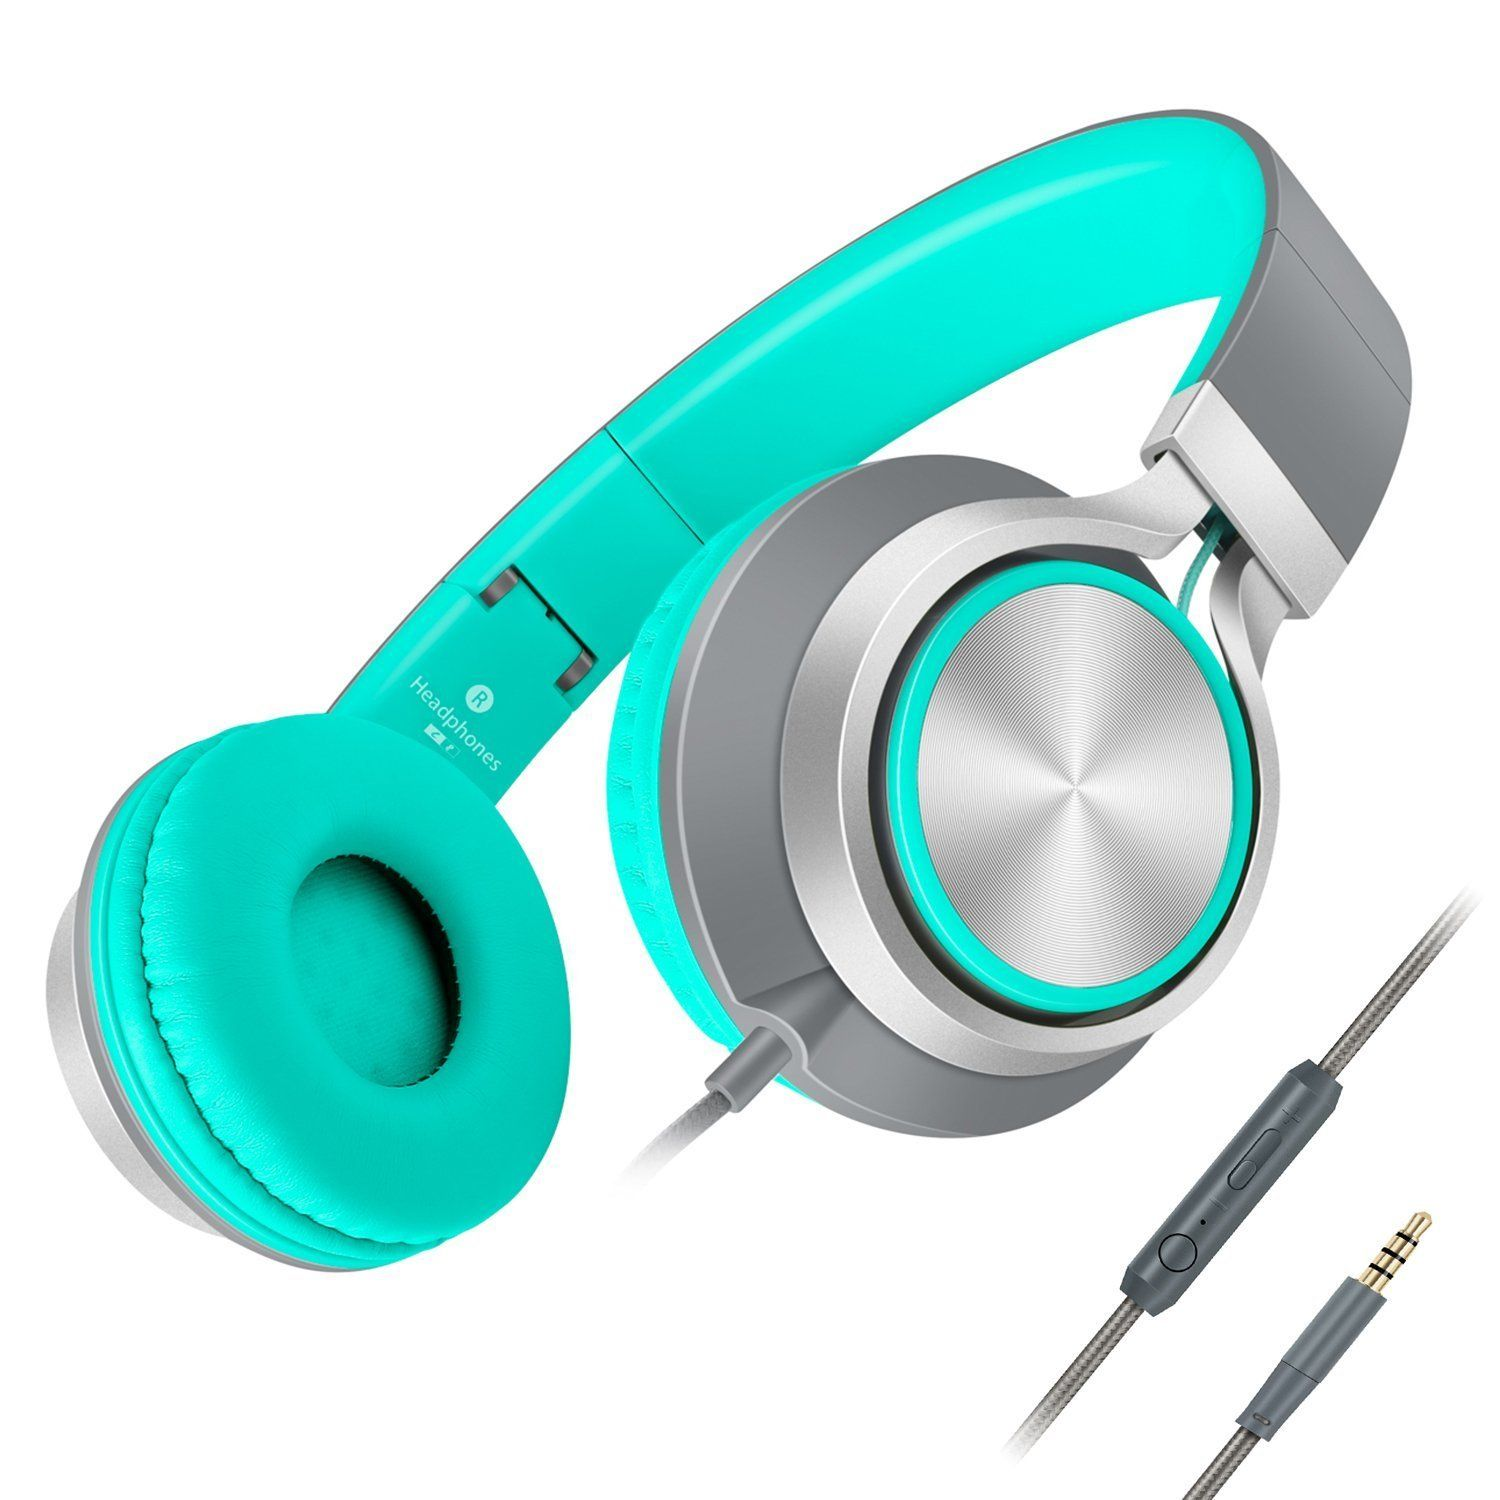 240cc4a31d9dcd Amazon.com: Headphones,AILIHEN C8 Lightweight Foldable Headphone with Microphone  Mic and Volume Control for iPhone,iPad,iPod,Android Smartphones,PC,Laptop  ...